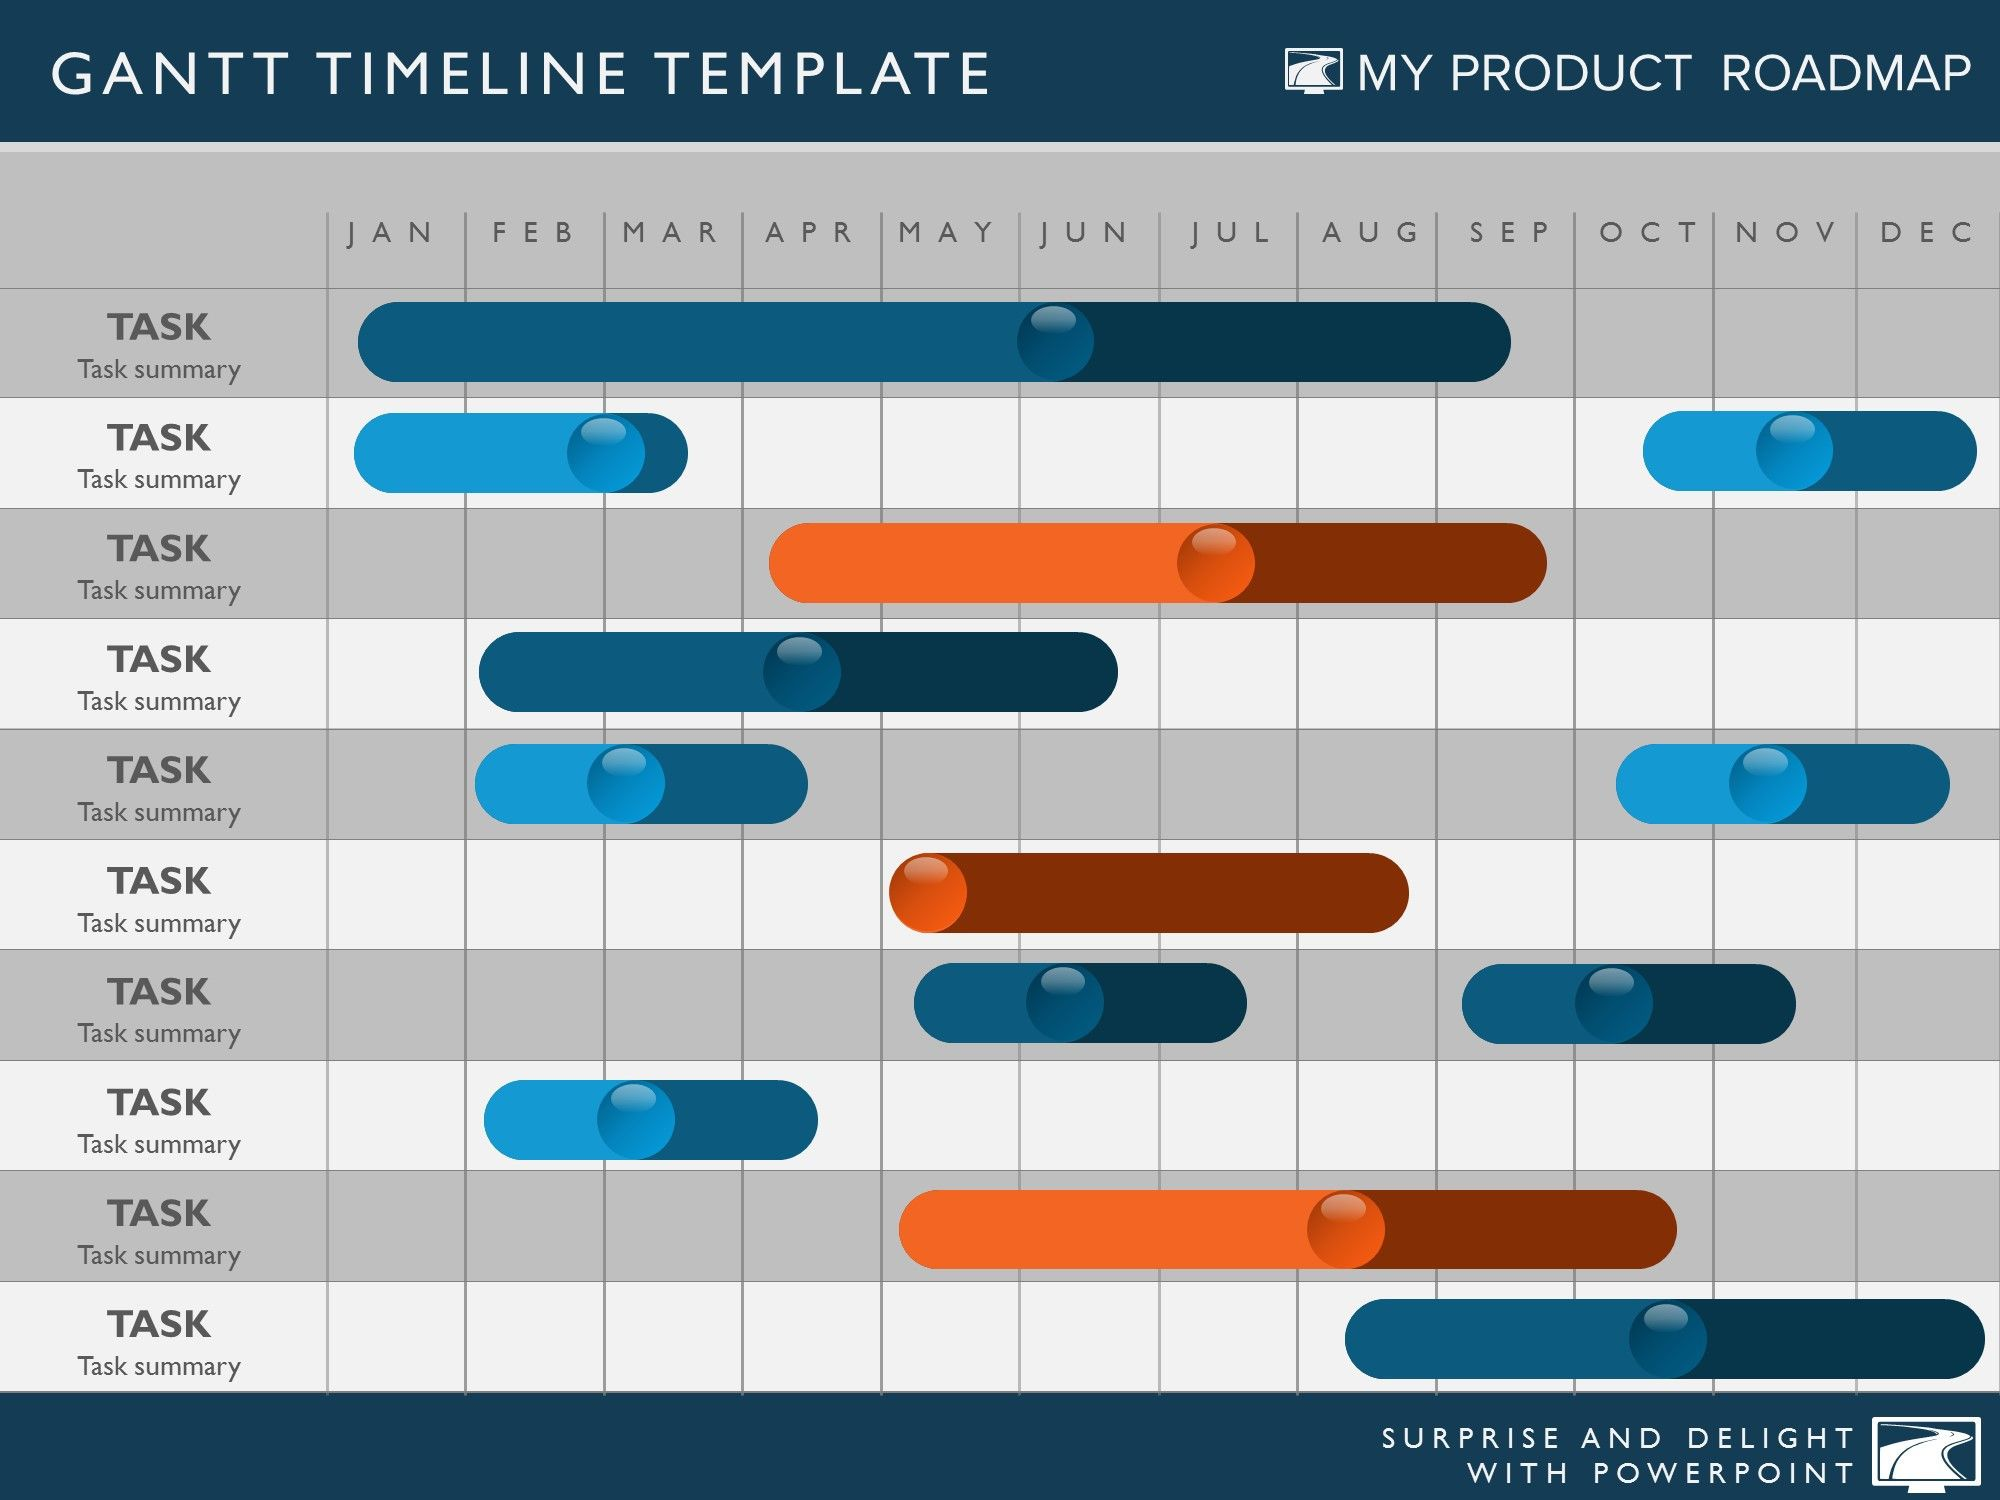 free roadmap template - timeline template my product roadmap product 39 s roadmap